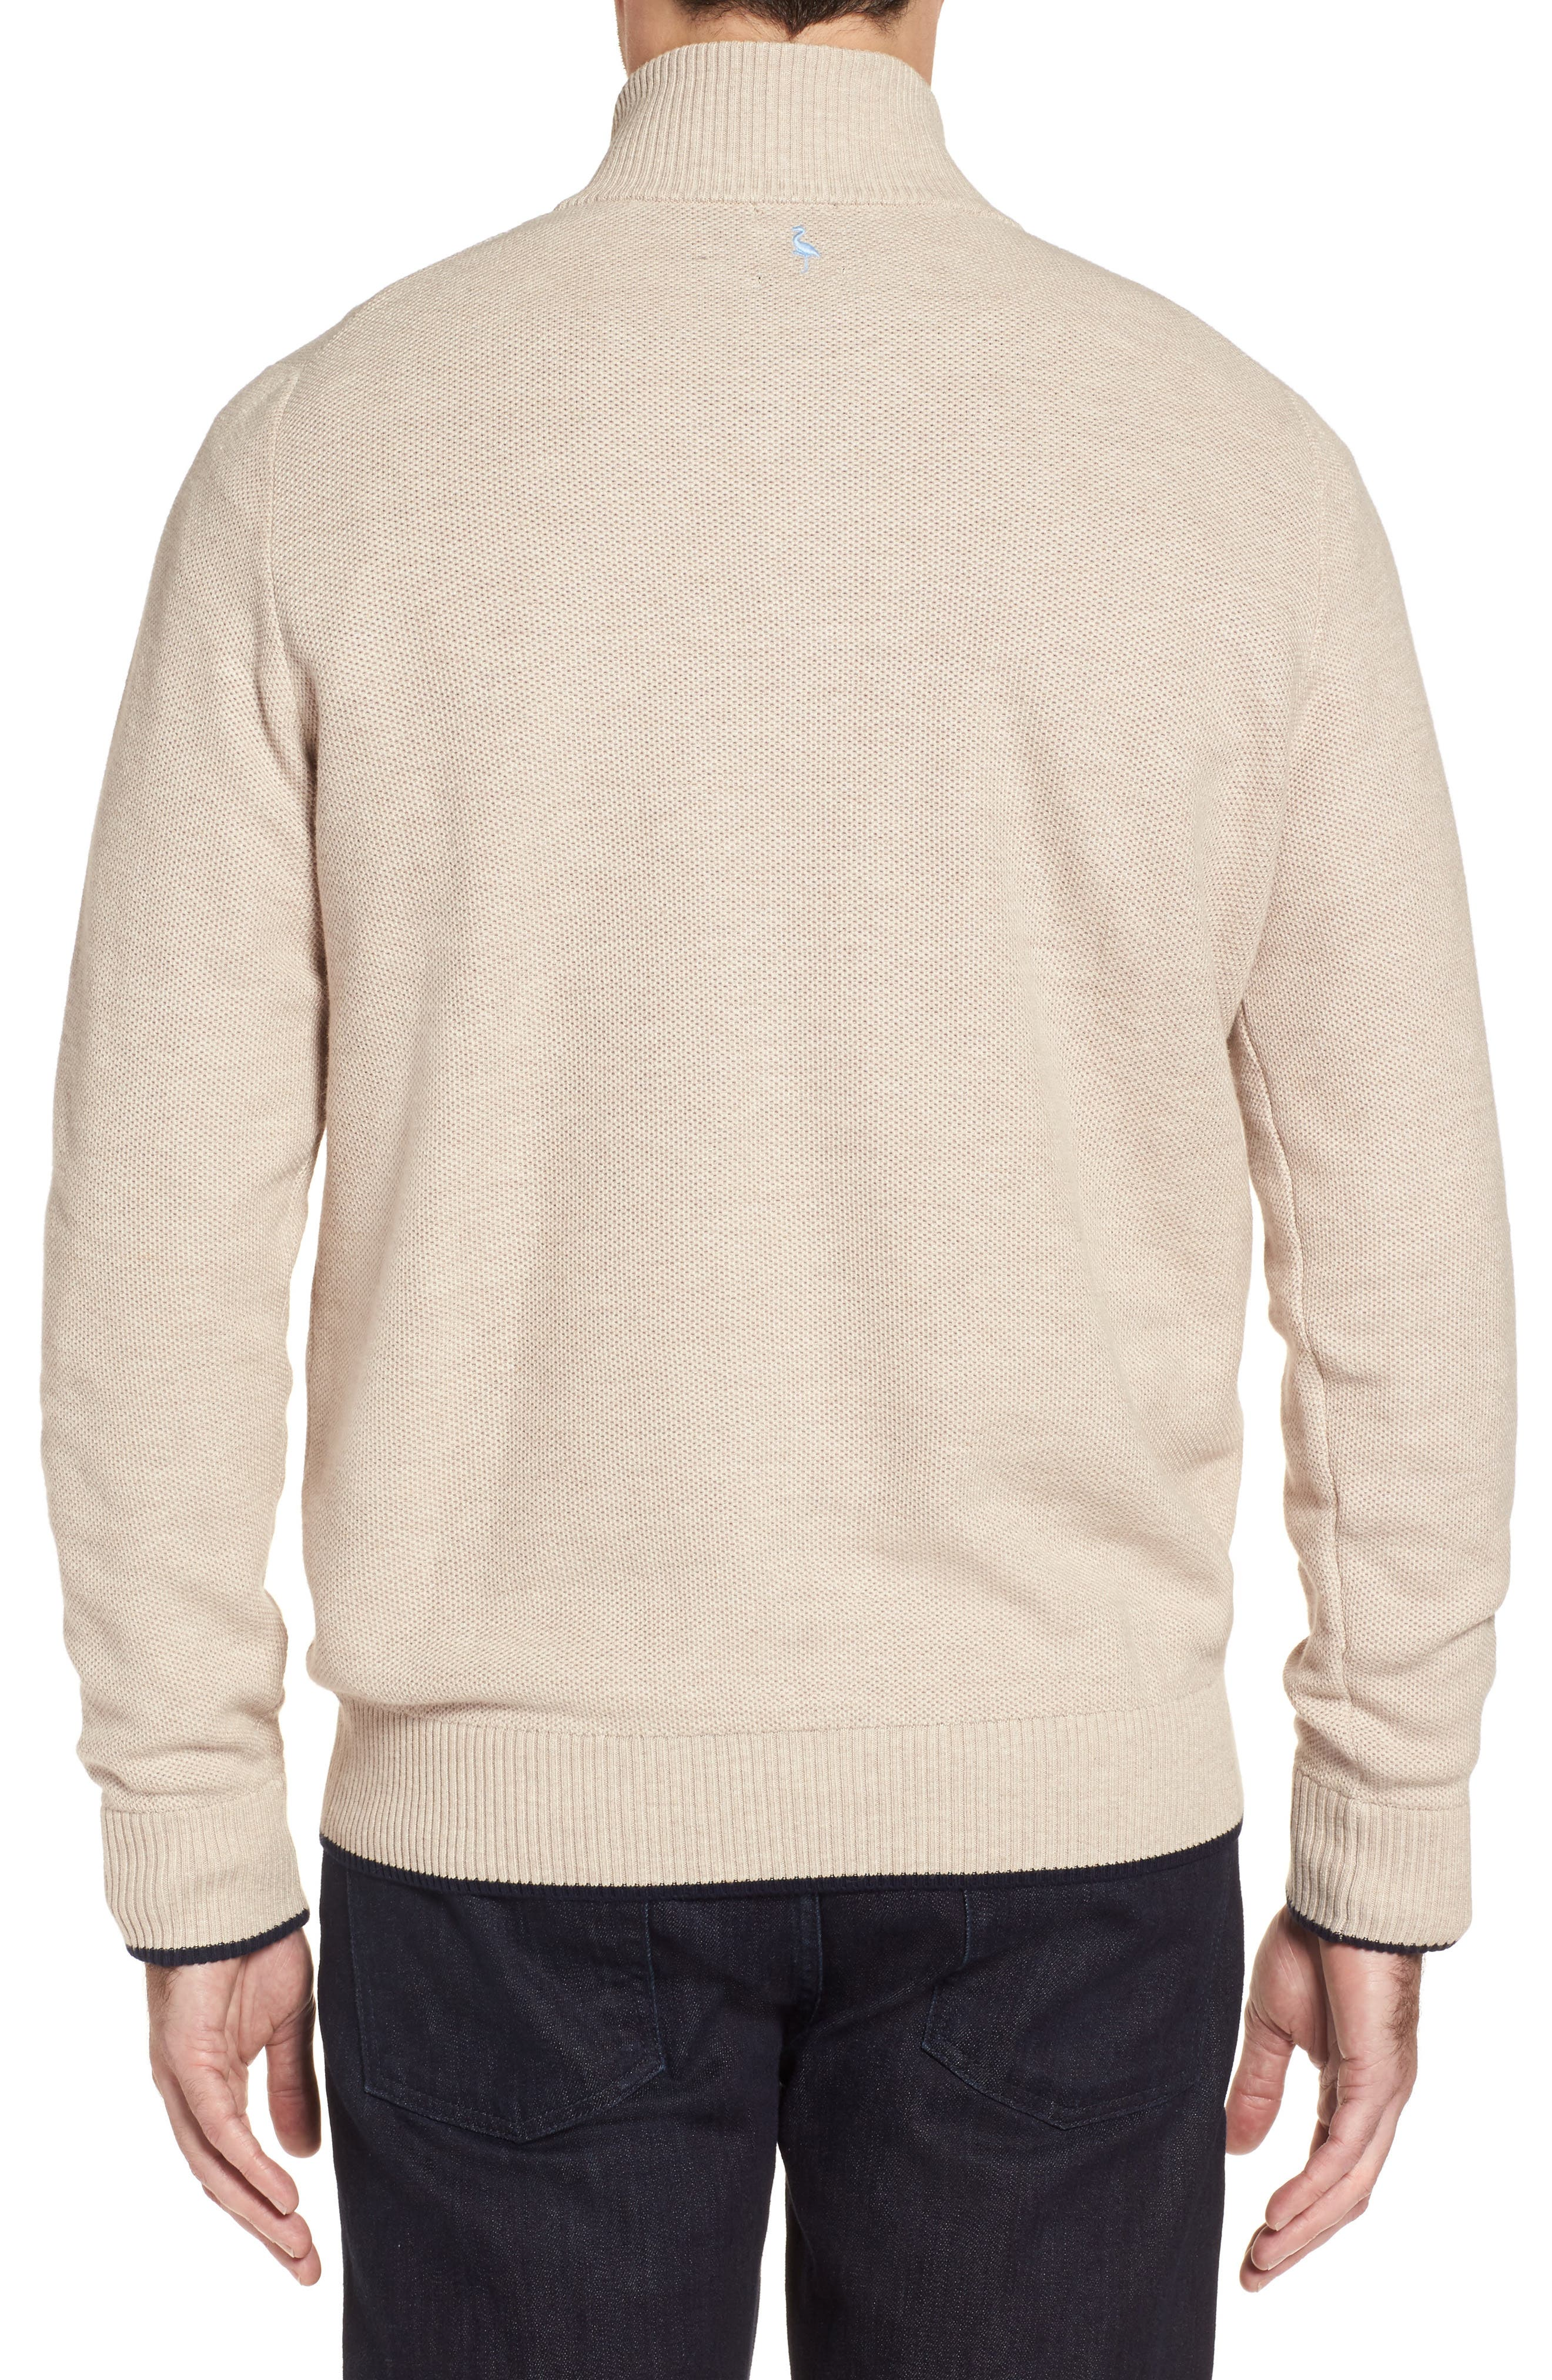 Sikes Tipped Quarter Zip Sweater,                             Alternate thumbnail 2, color,                             Oatmeal